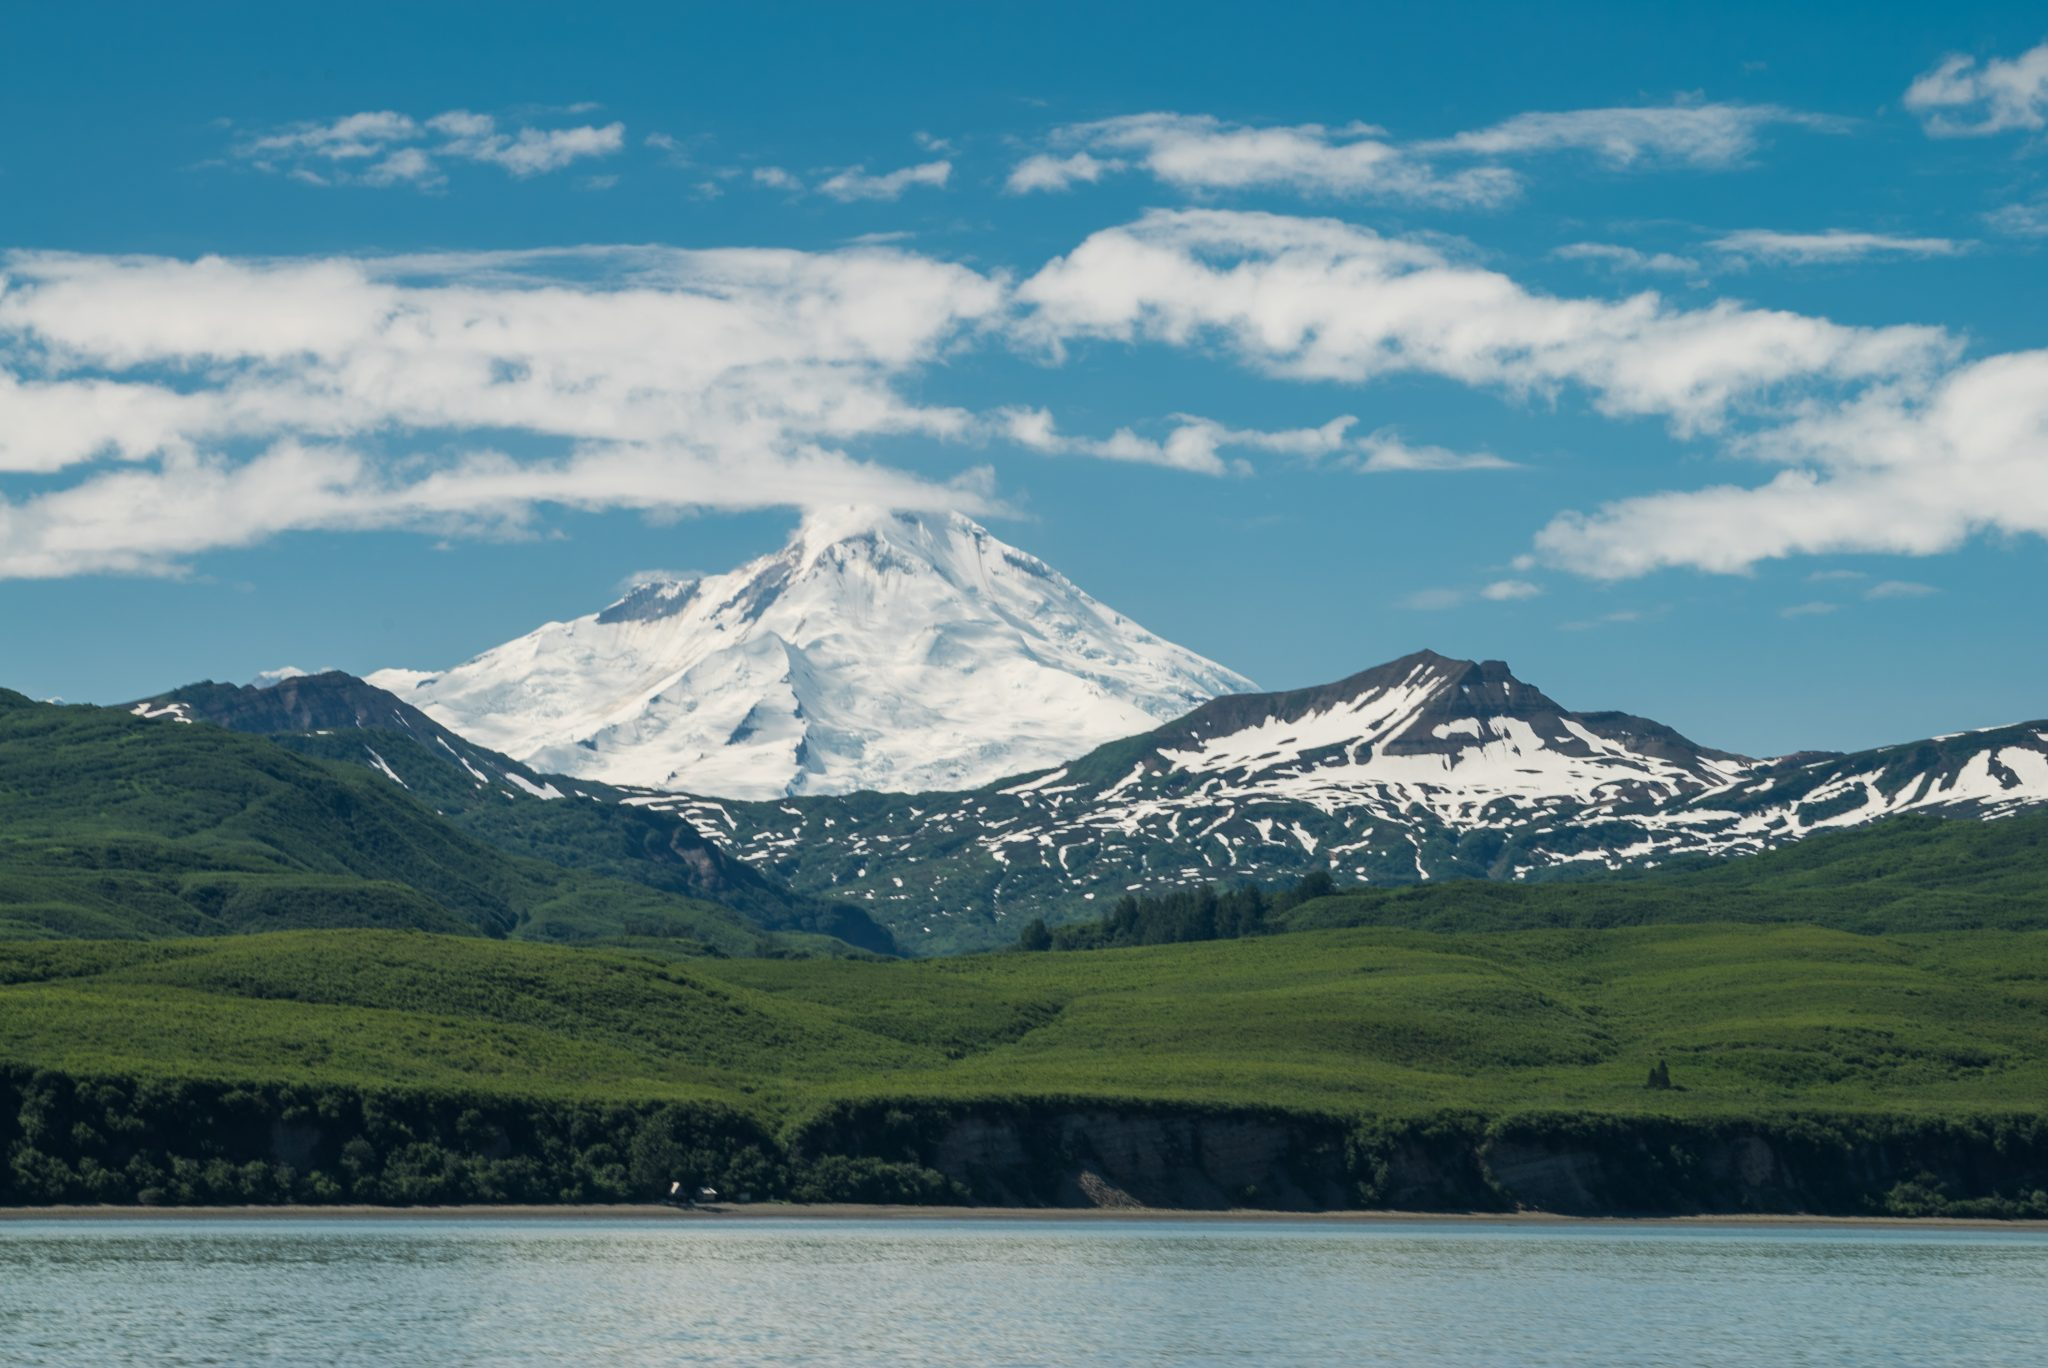 alaska-iliamna-mountain-snug-harbor-DSC06981